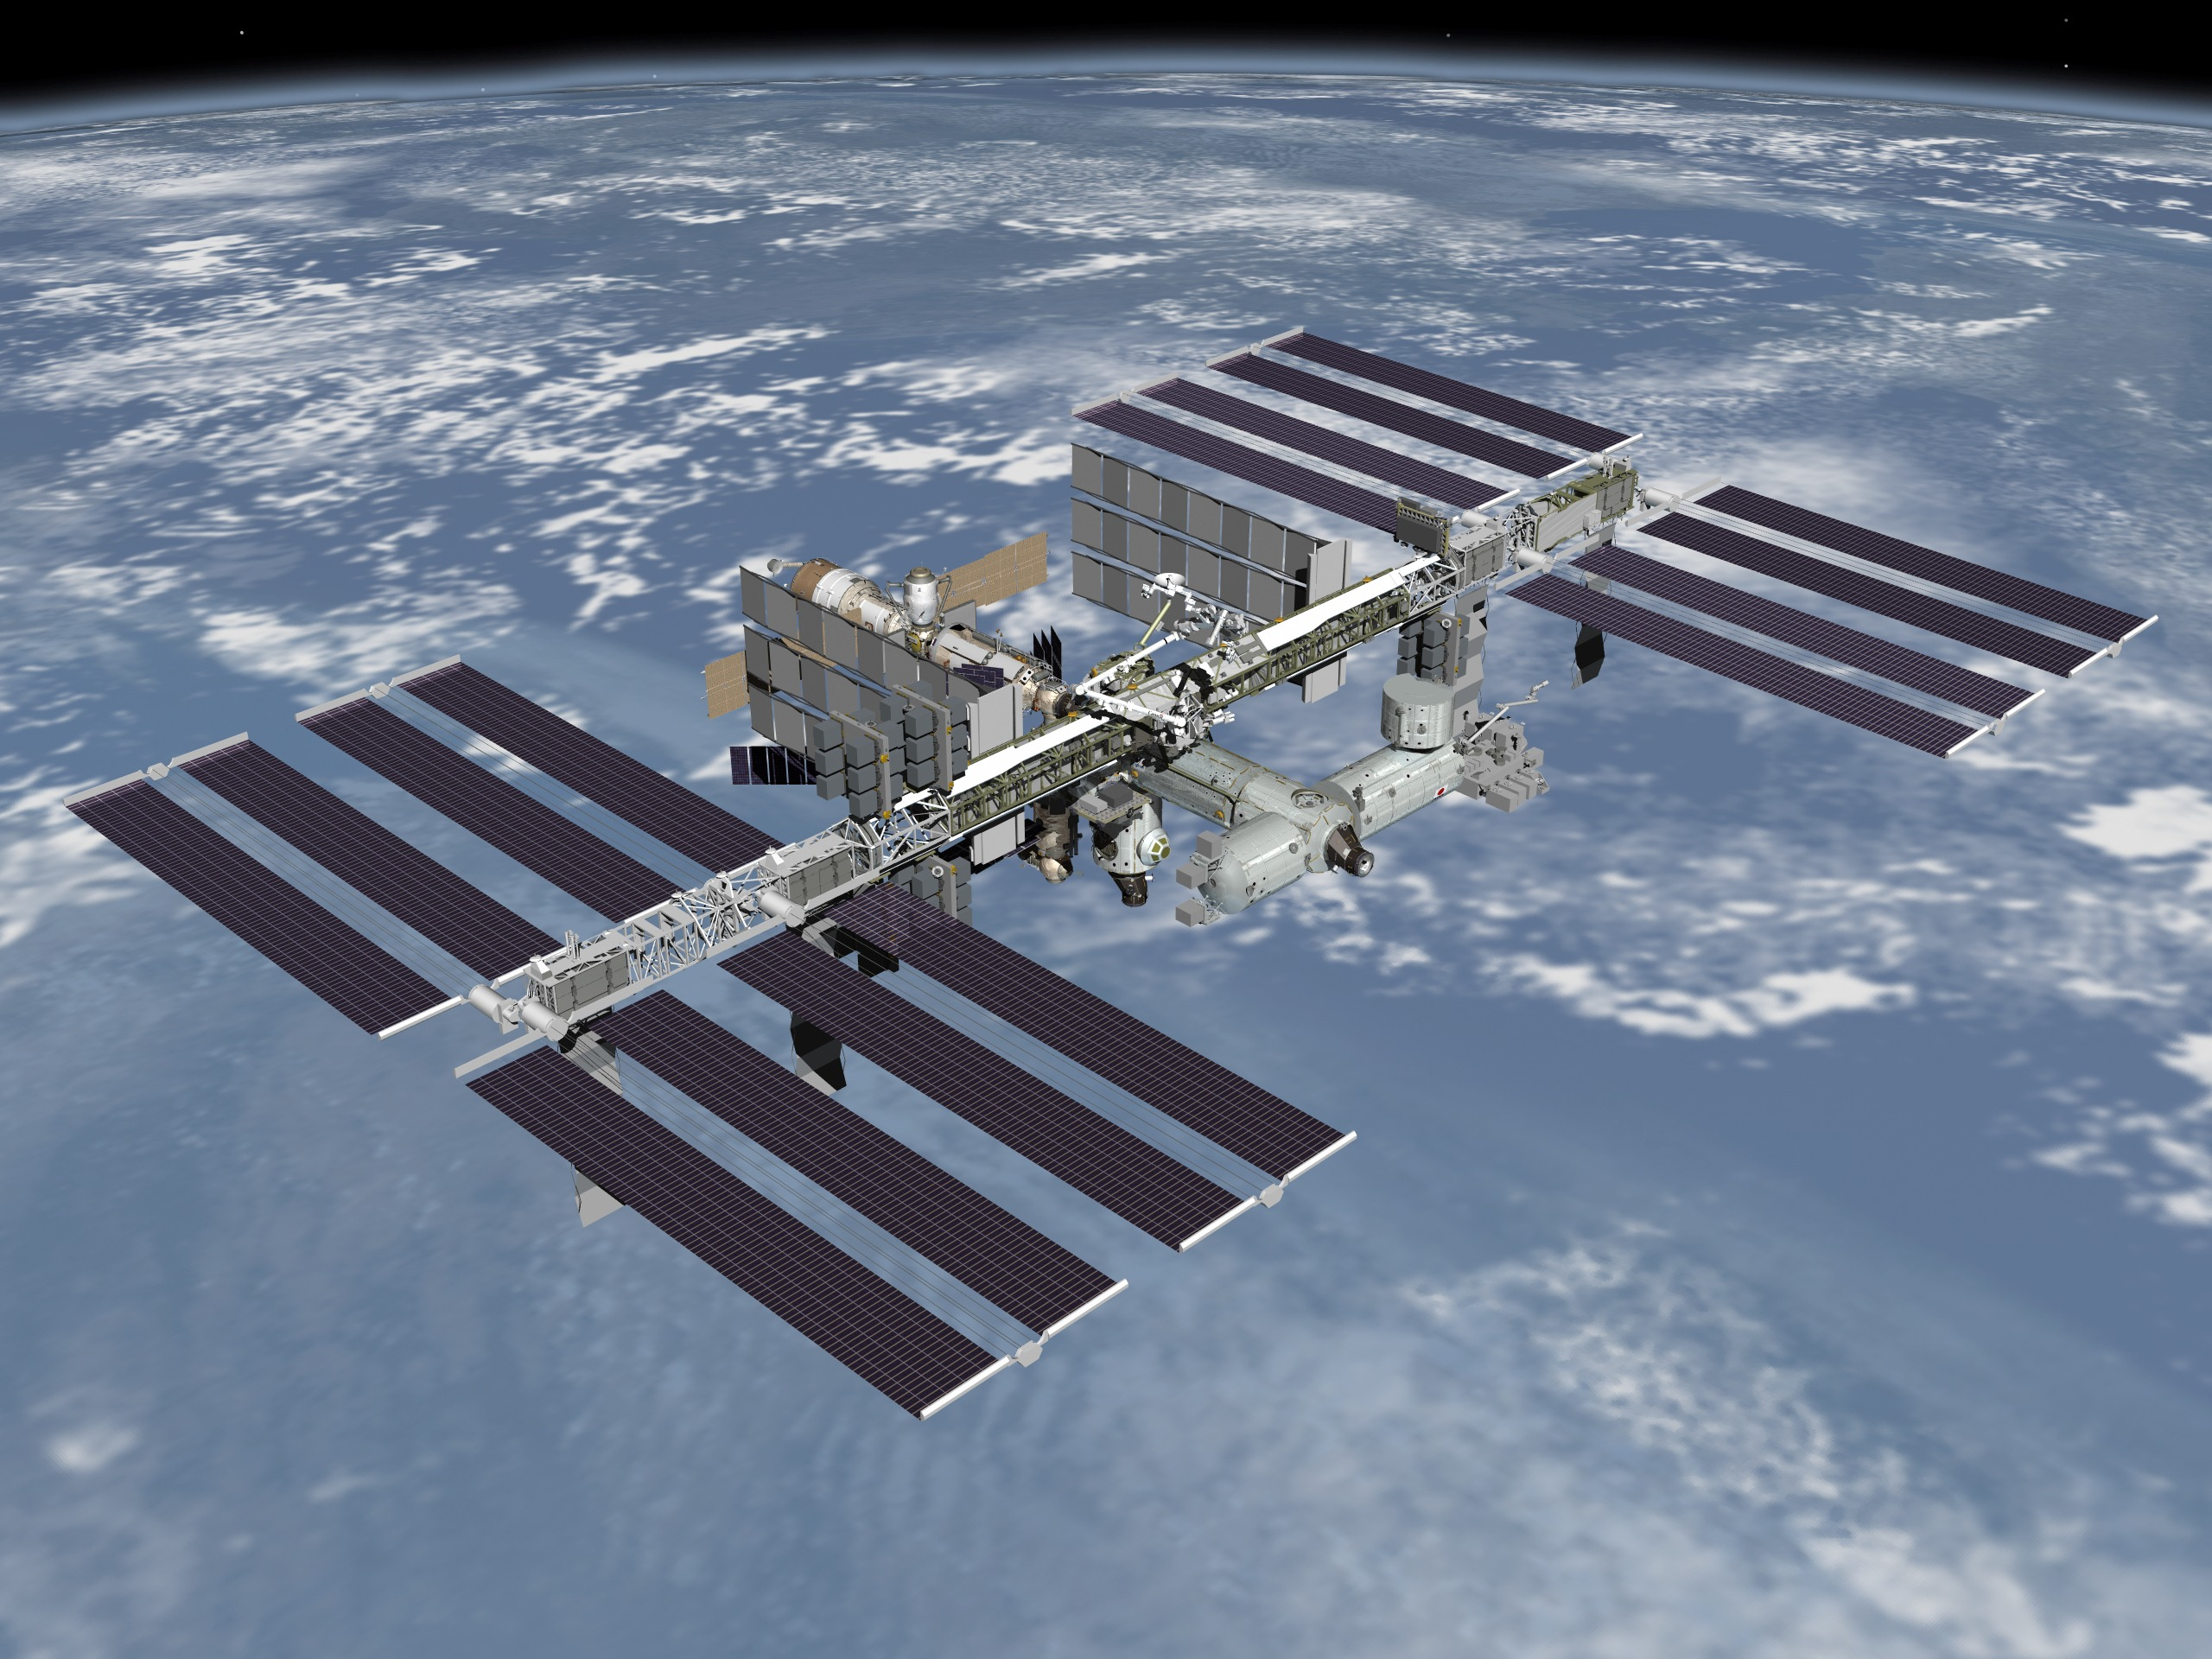 NASA's Spot the Station Service